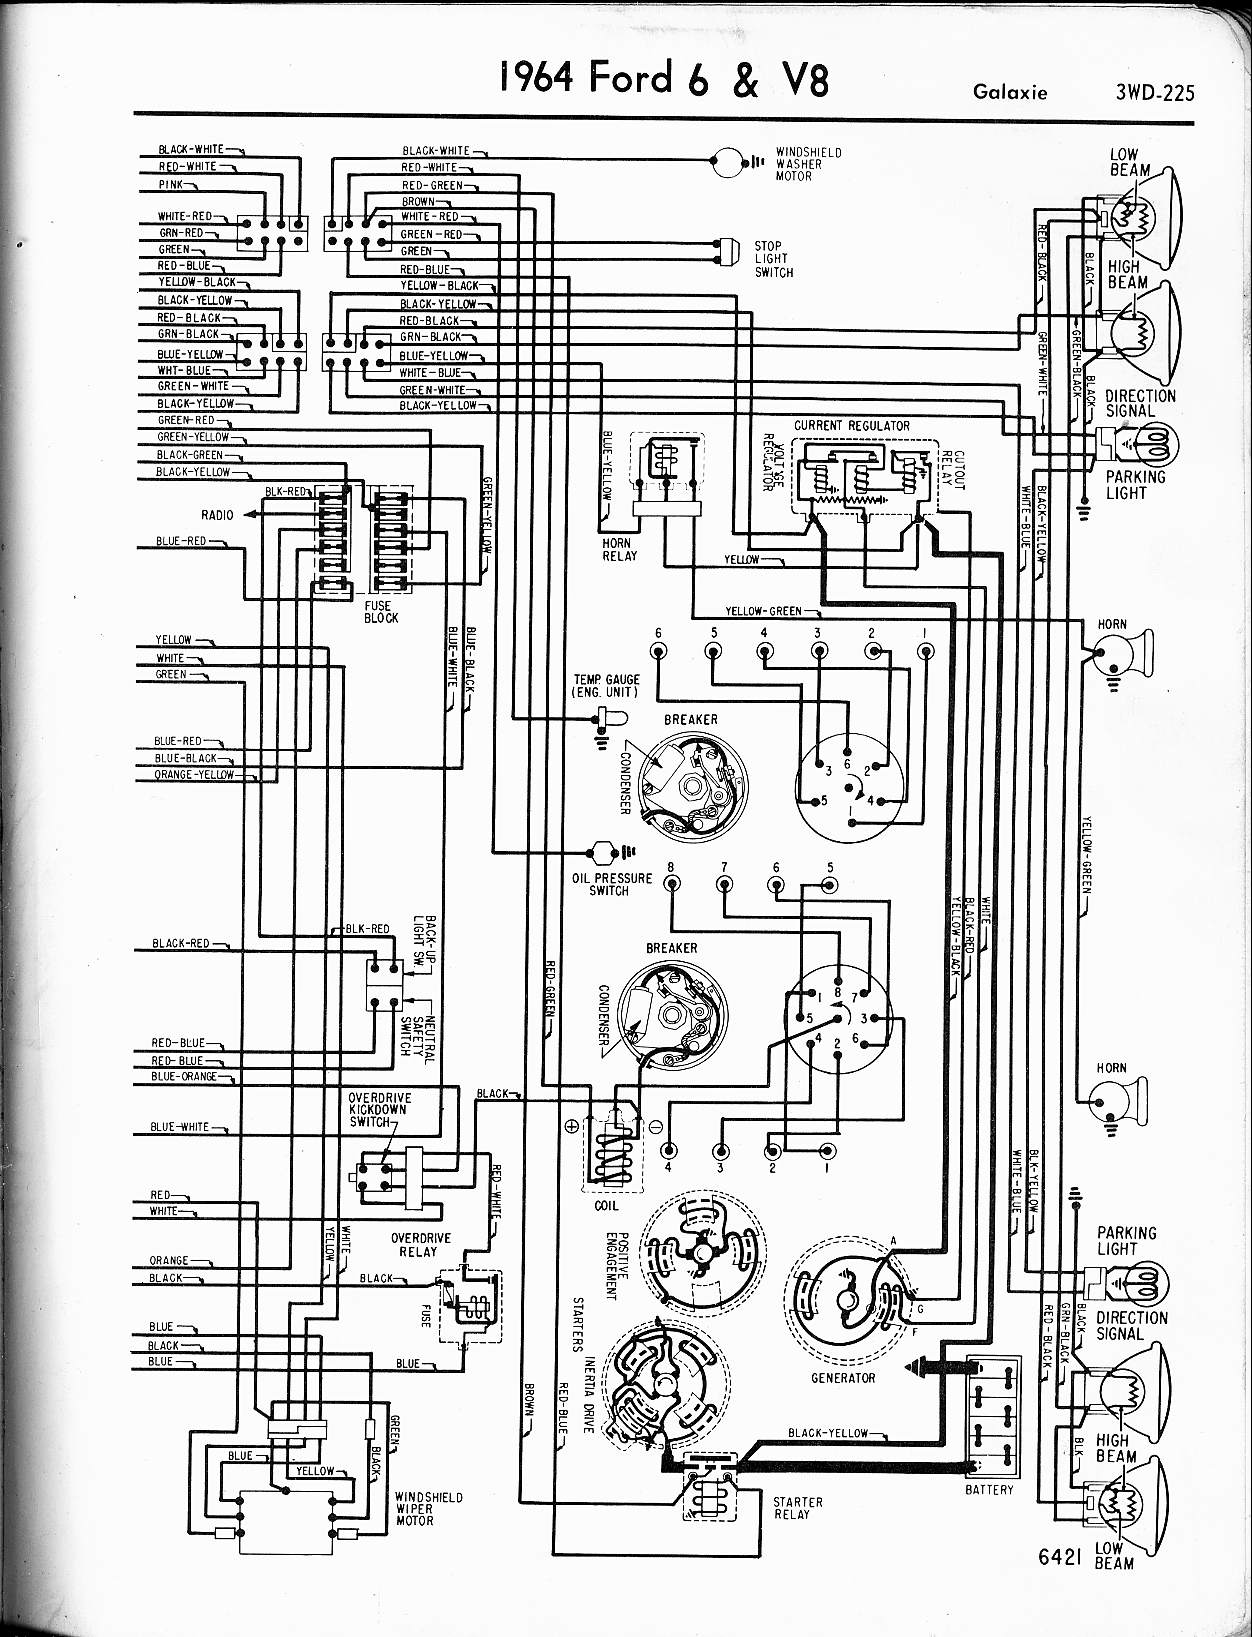 1961 Ford Galaxie Fuse Box on 1960 ford thunderbird wiring diagram